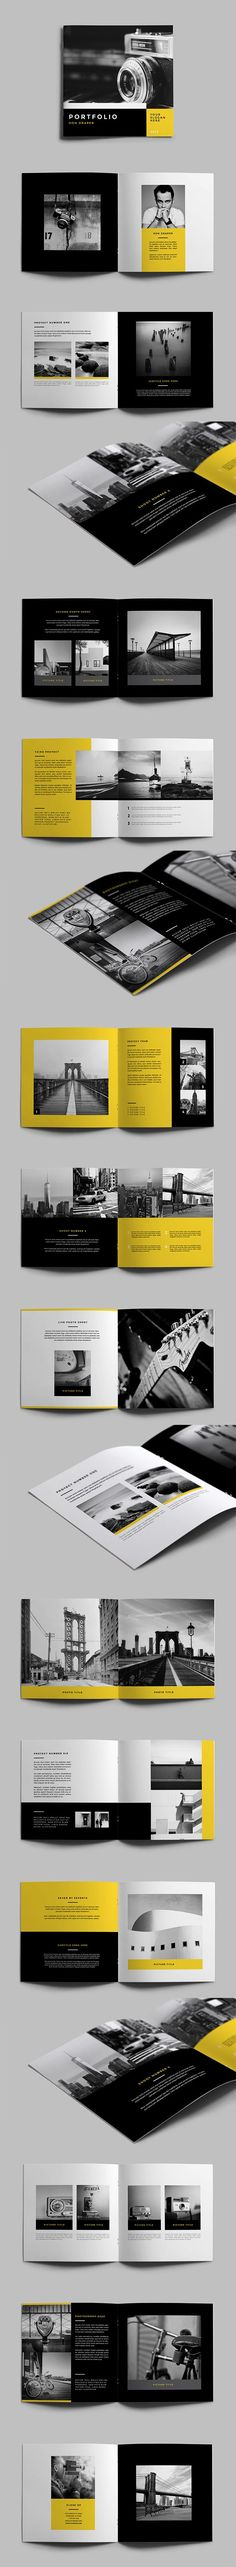 Layout design  Simple Minimal Portfolio. Download here: http://graphicriver.net/item/simple-minimal-portfolio/11455547?ref=abradesign #portfolio #brochure #design